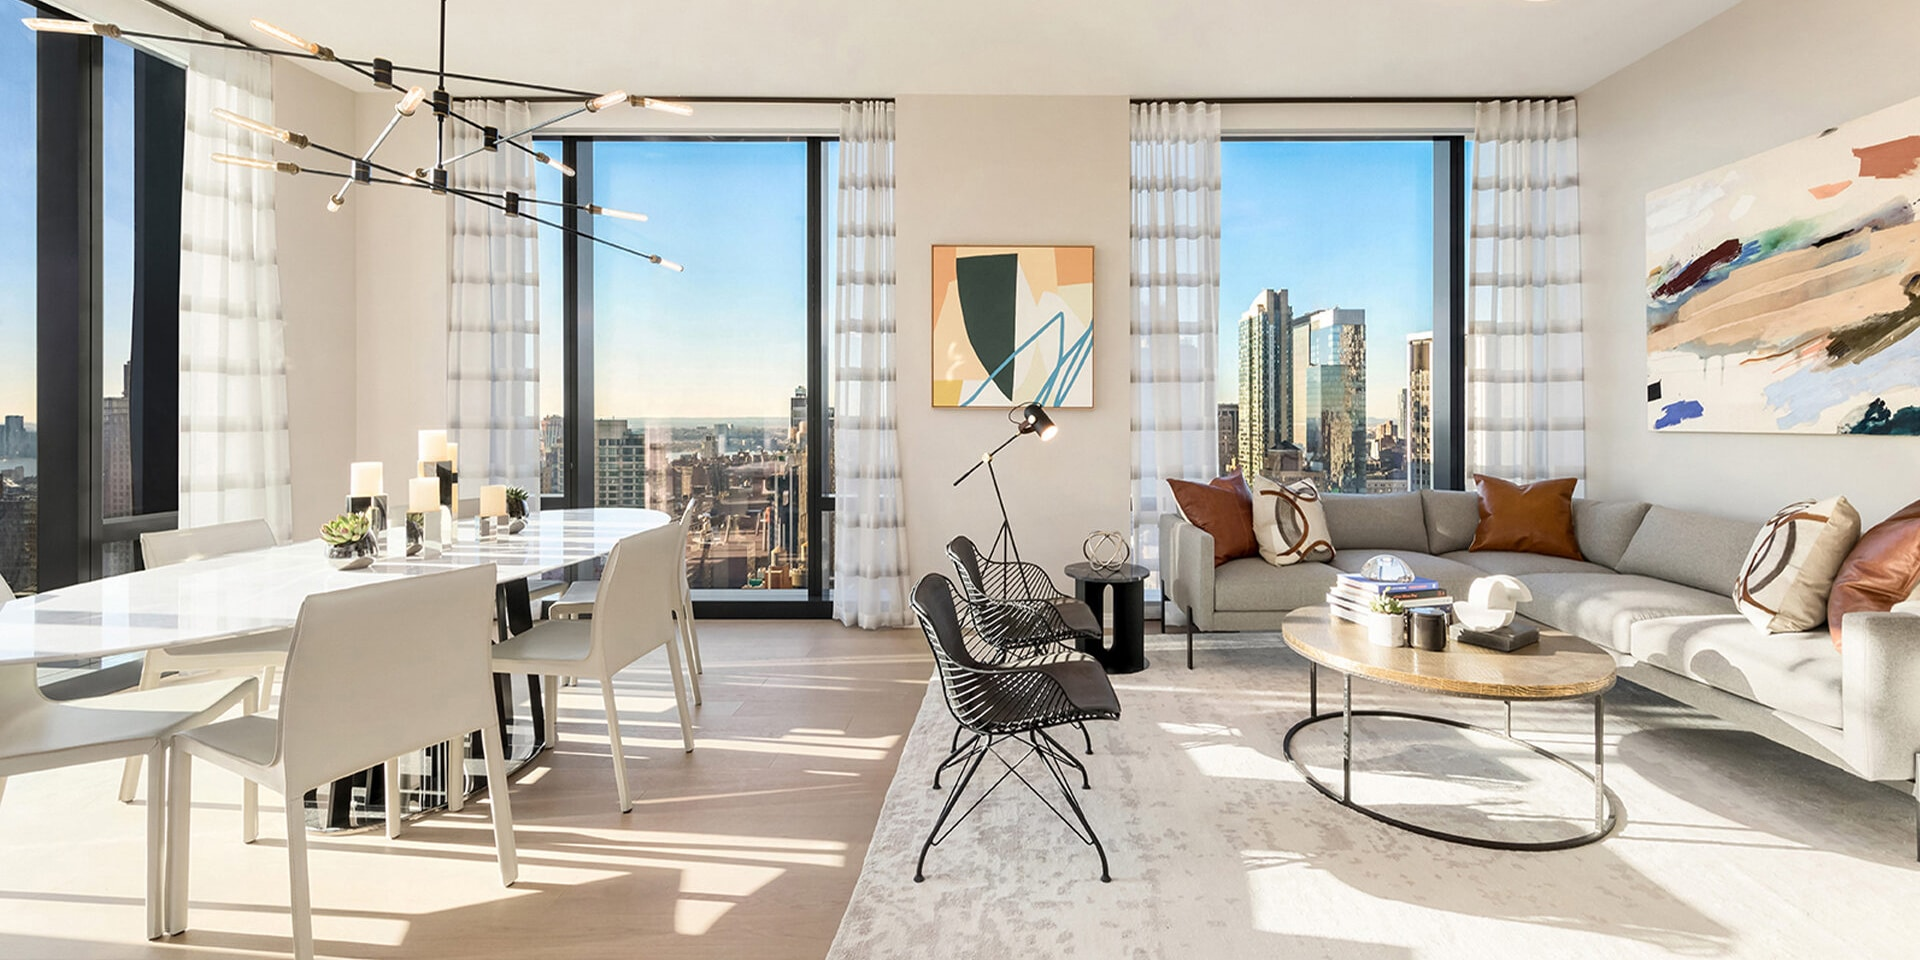 Open concept living and dining room at 277 Fifth Ave luxury condos in New York. White accents with furniture and city views.